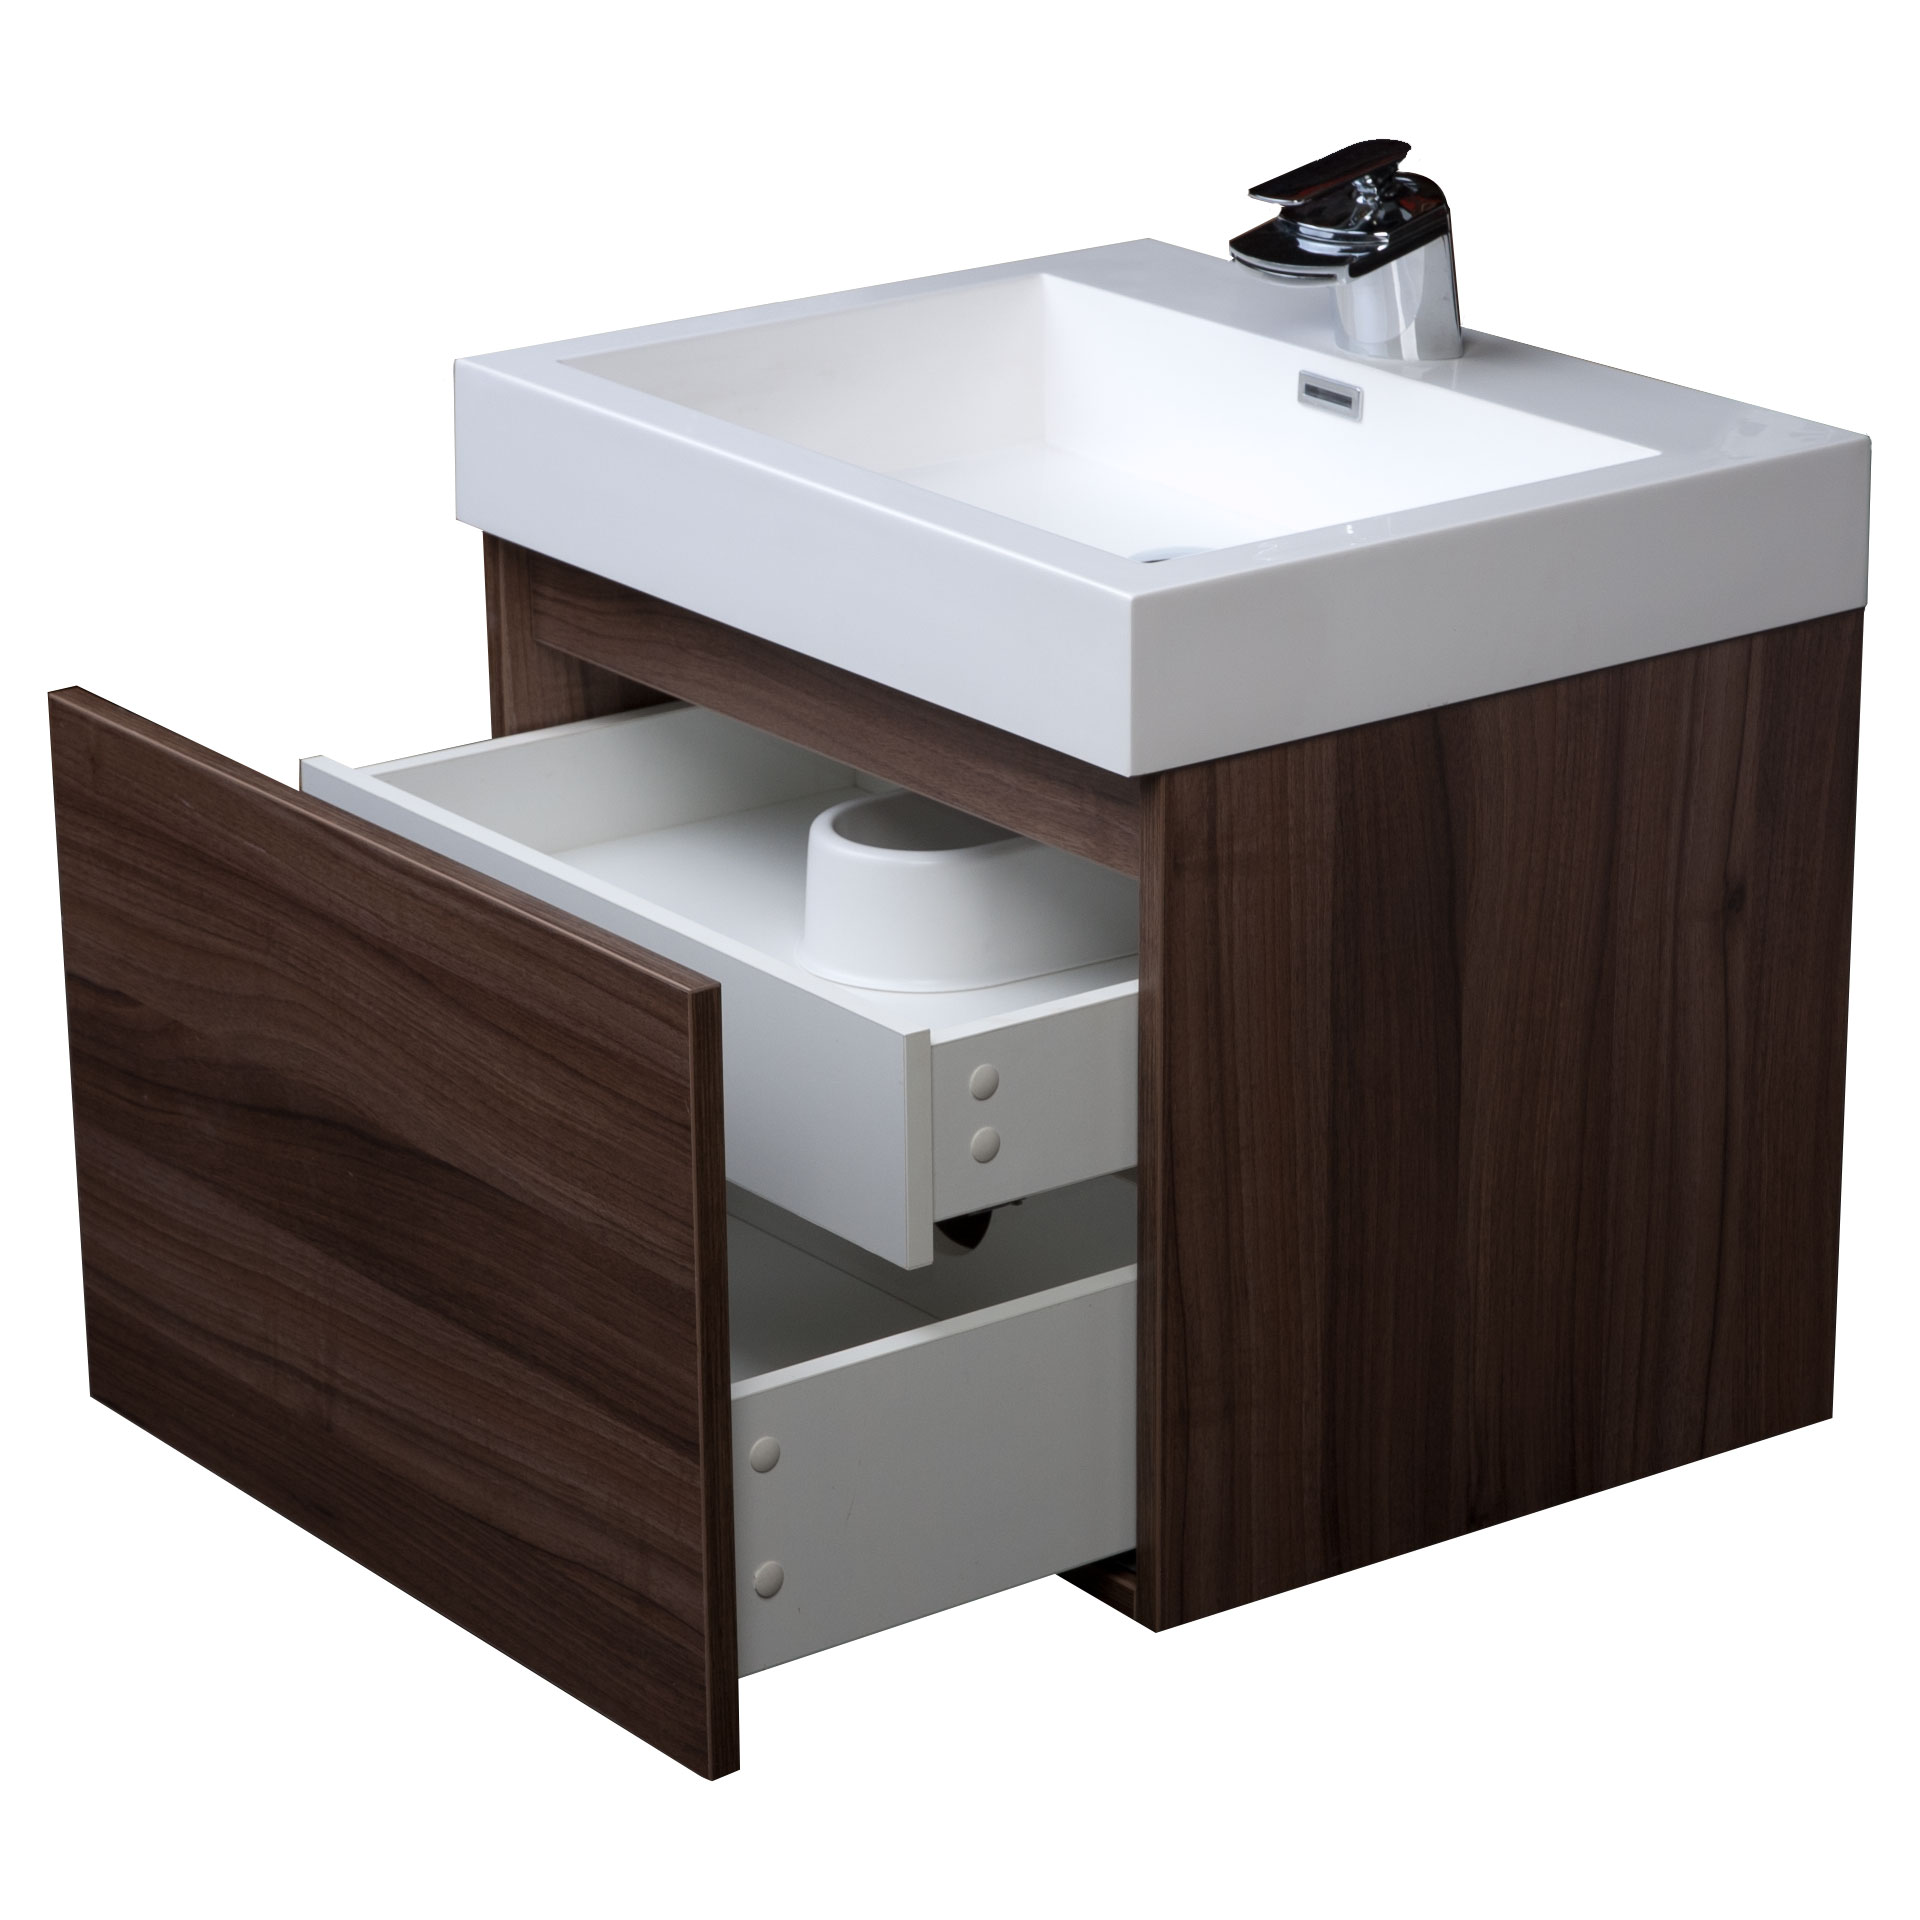 Modern single bathroom vanity with drawer walnut tn a600 - Bathroom vanity with drawers on left ...